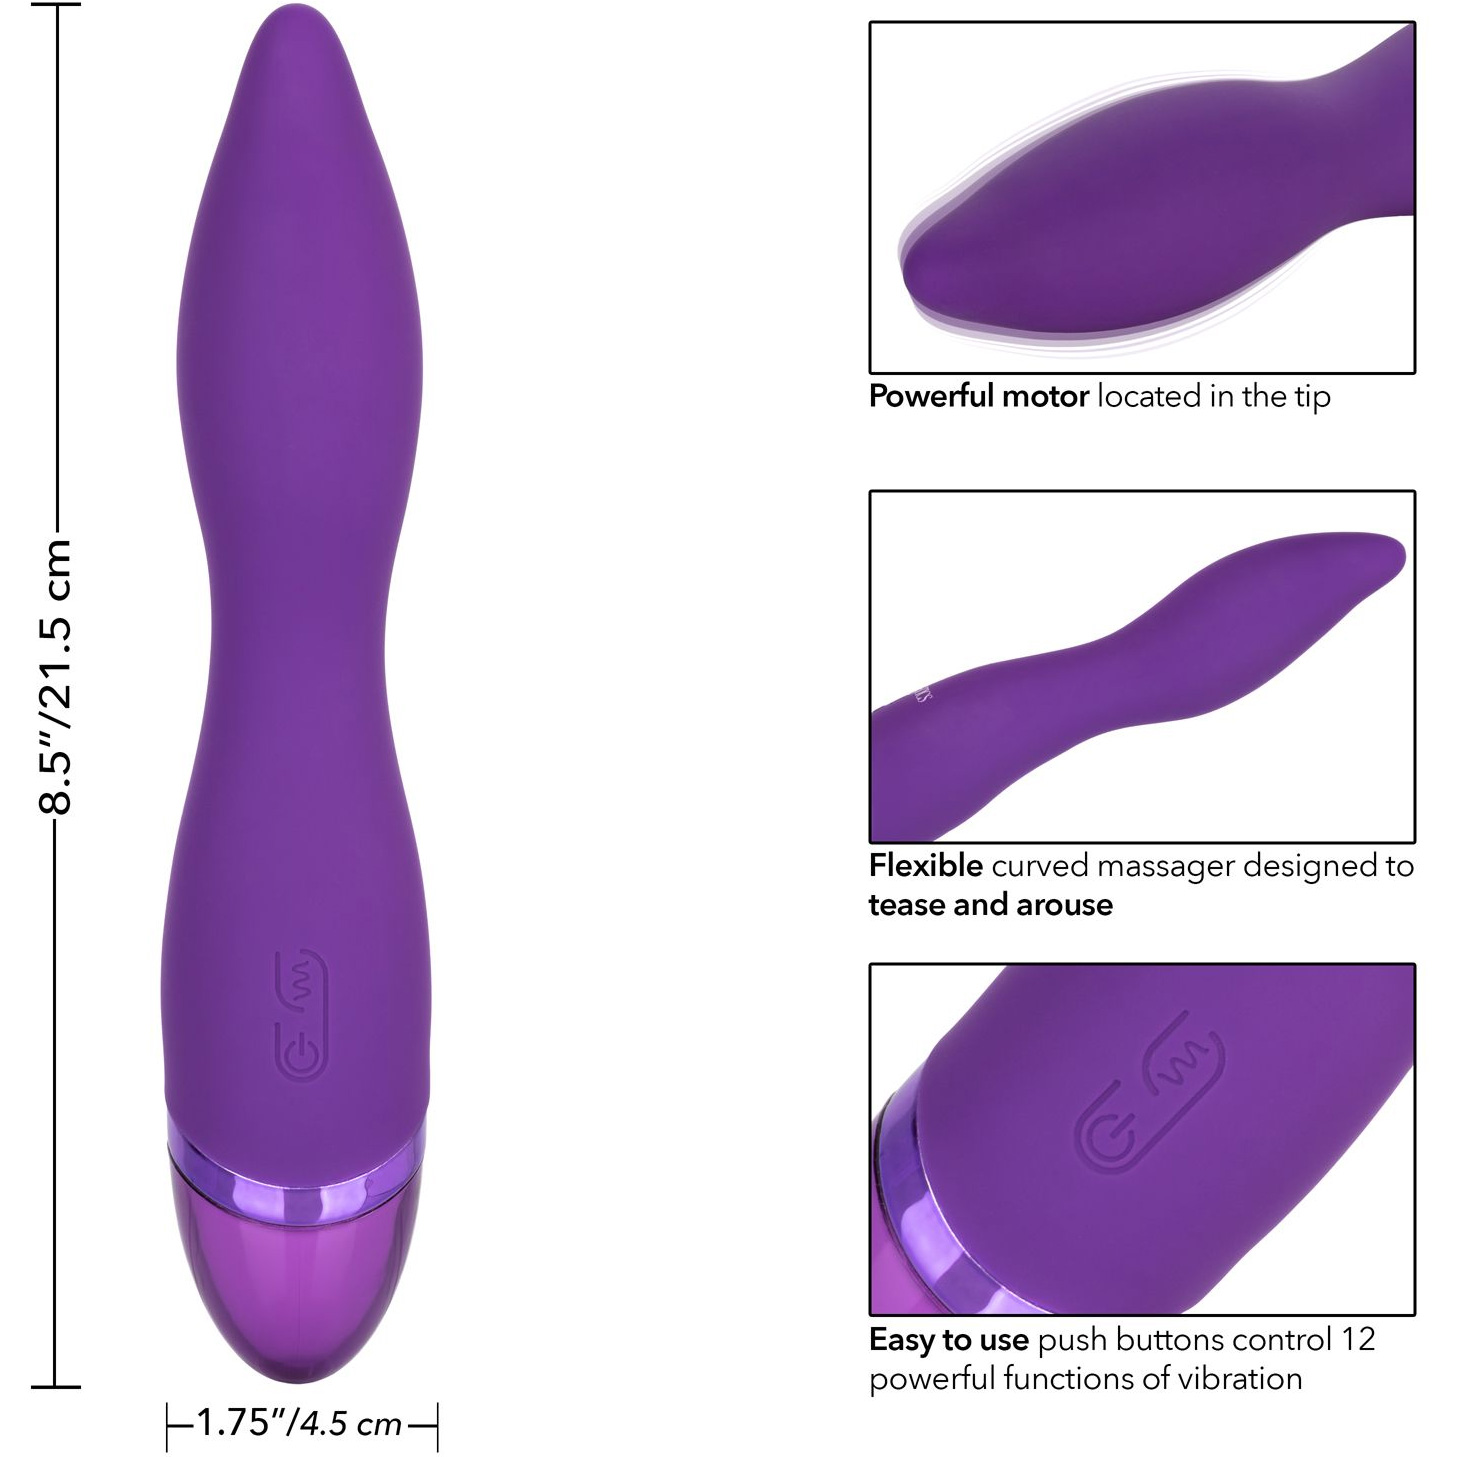 Aura Wand Silicone Rechargeable Waterproof Vibrator - Measurements